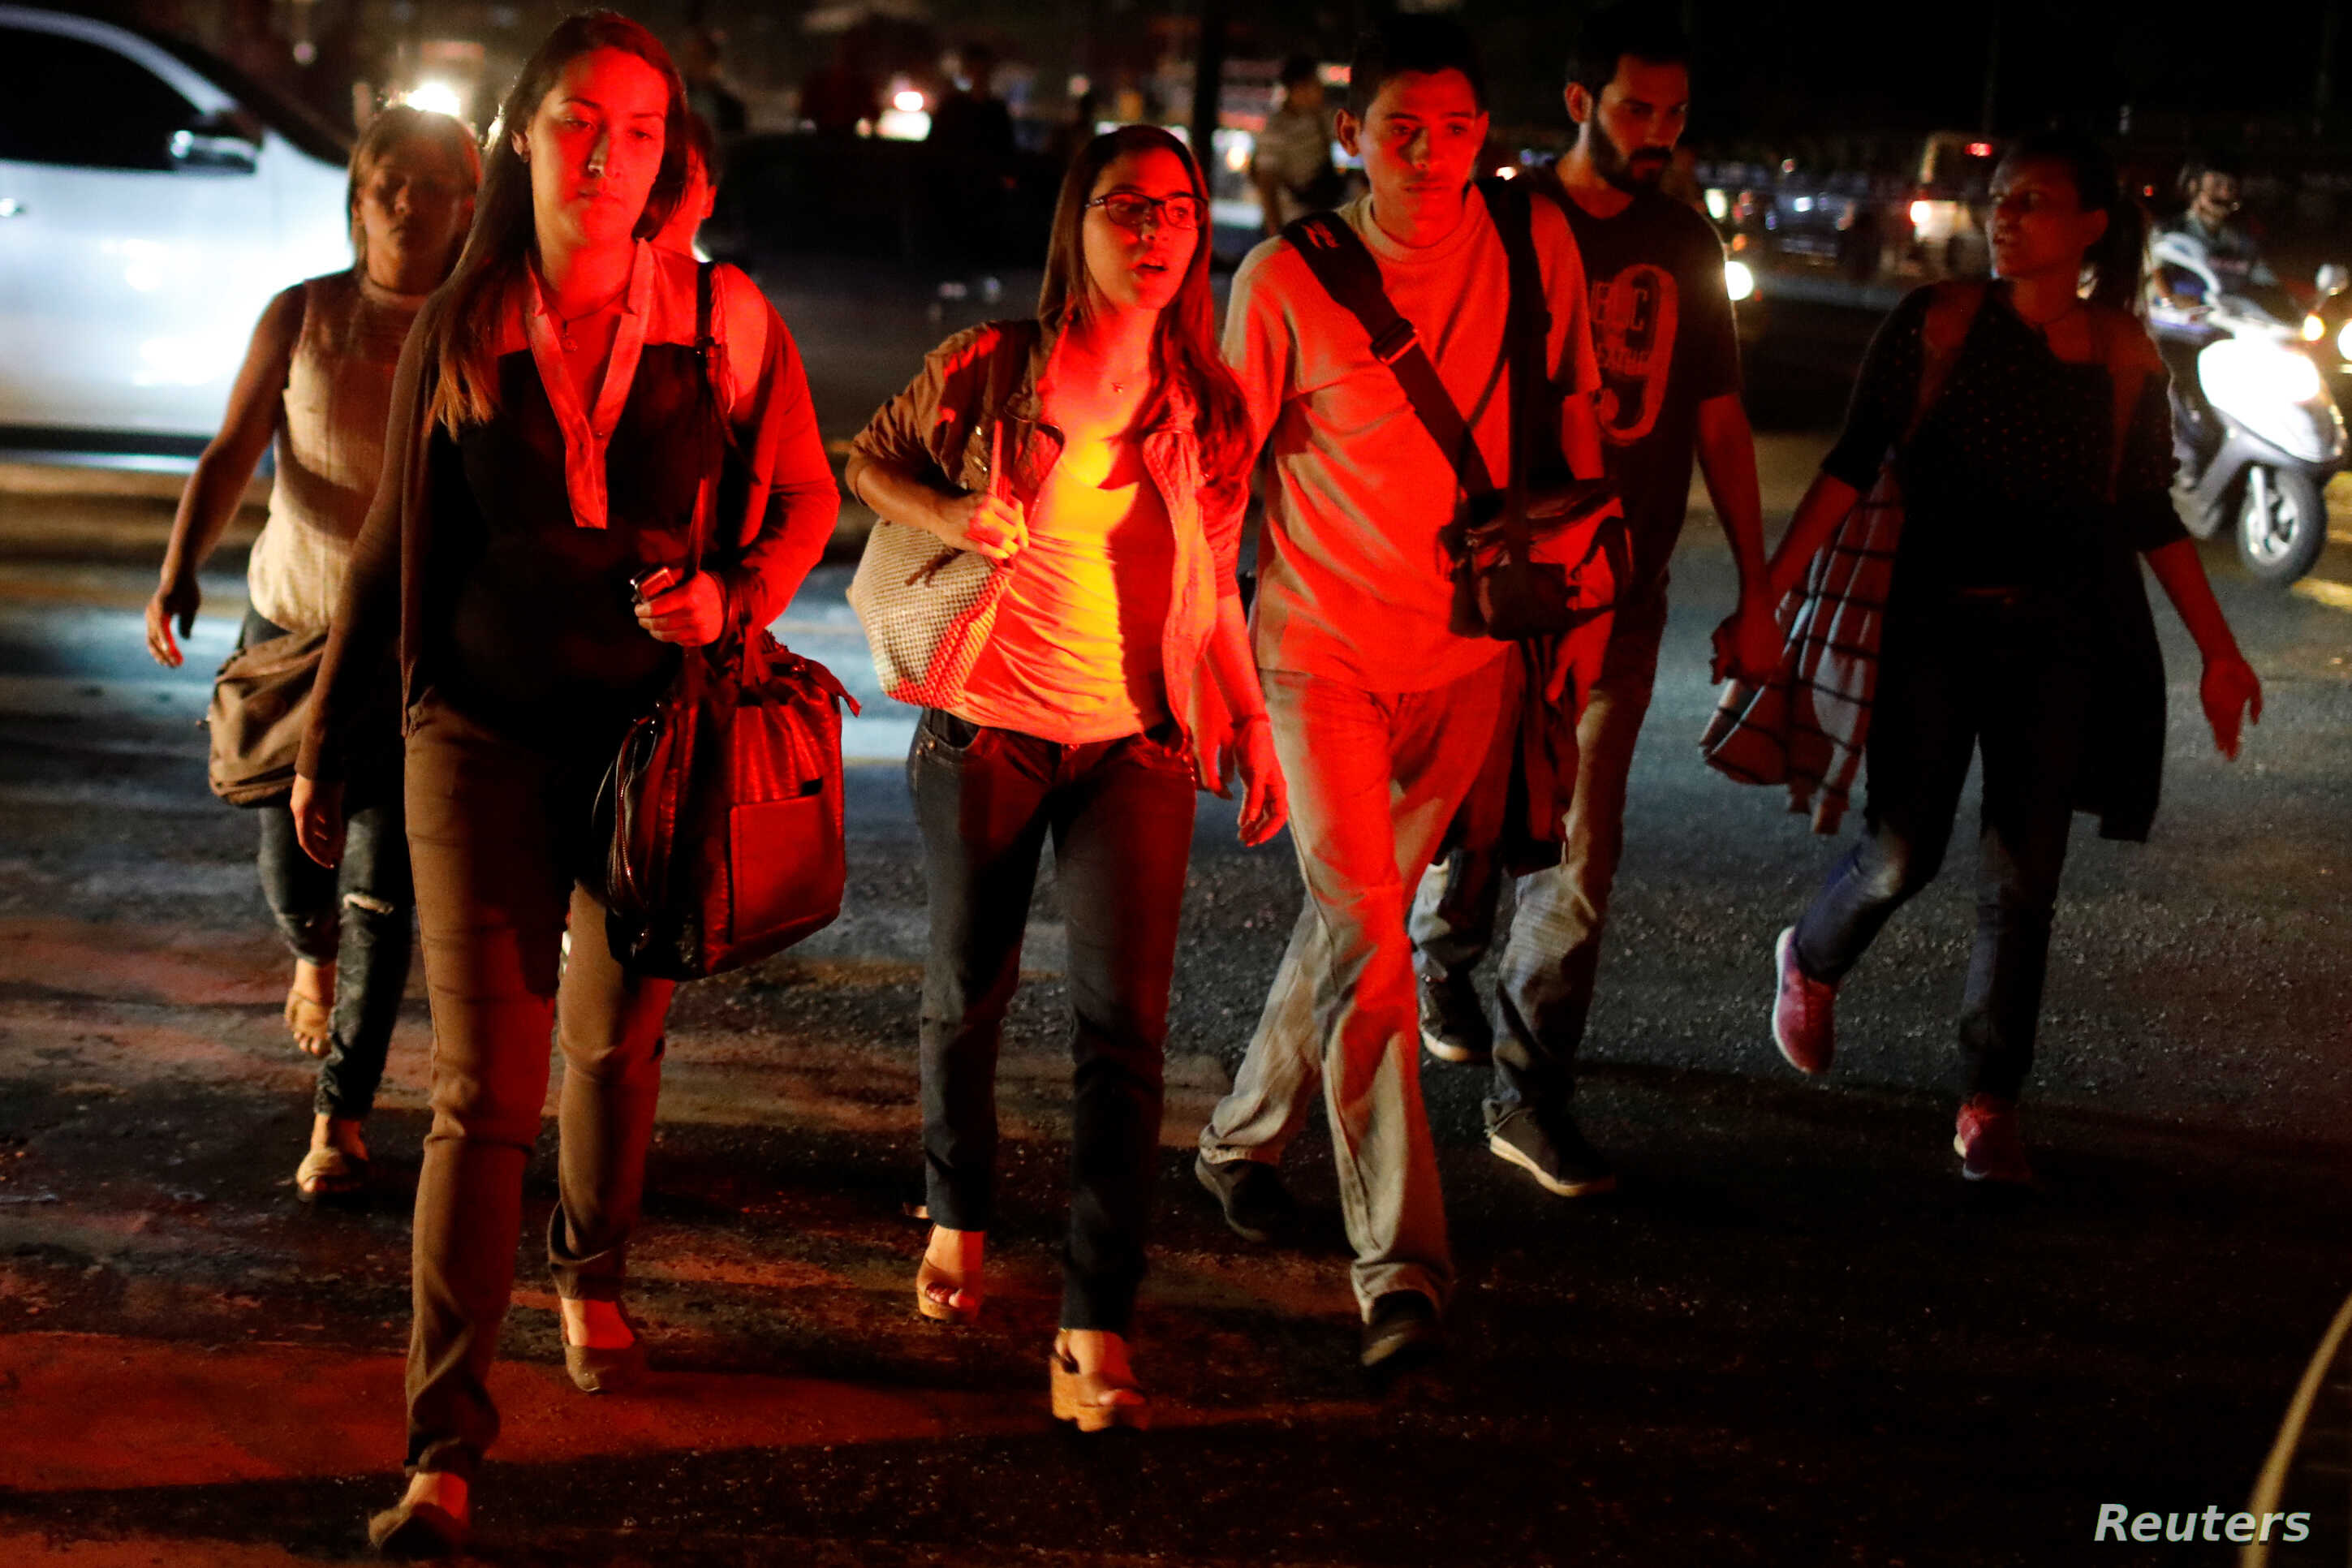 People walk on the street during a blackout in Caracas, Venezuela, March 7, 2019.